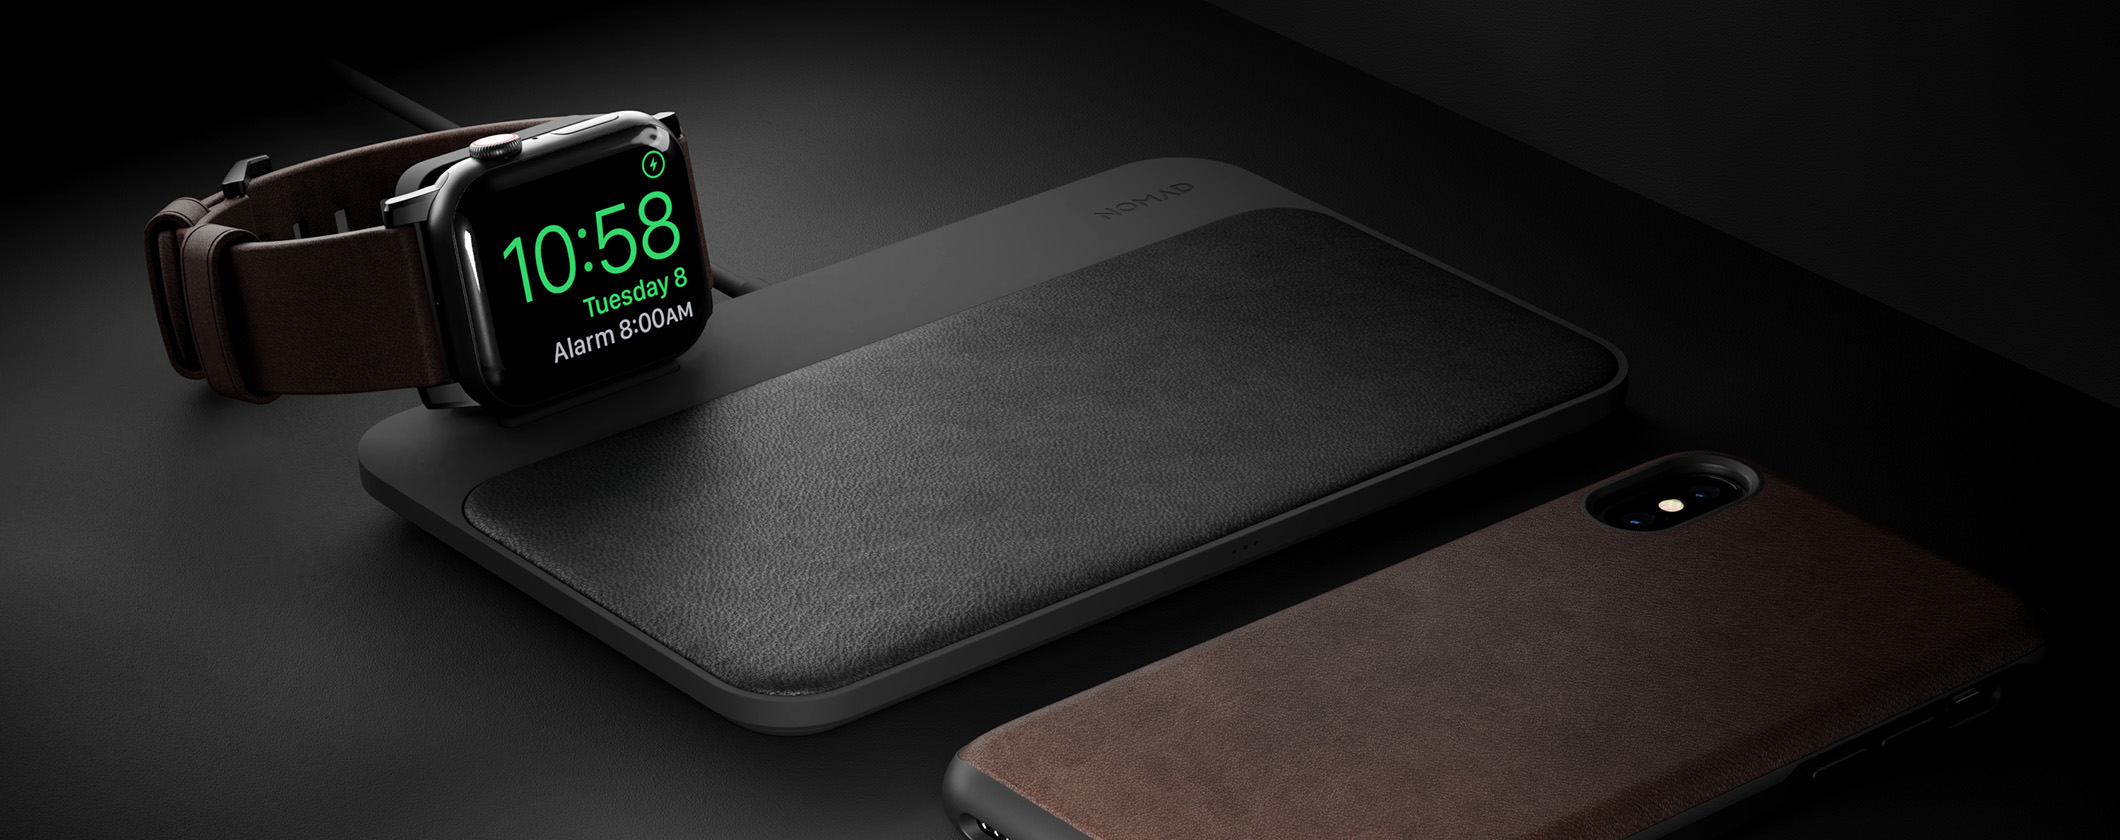 Nomad introduces all-in-one wireless charging hub for iPhone and Apple Watch